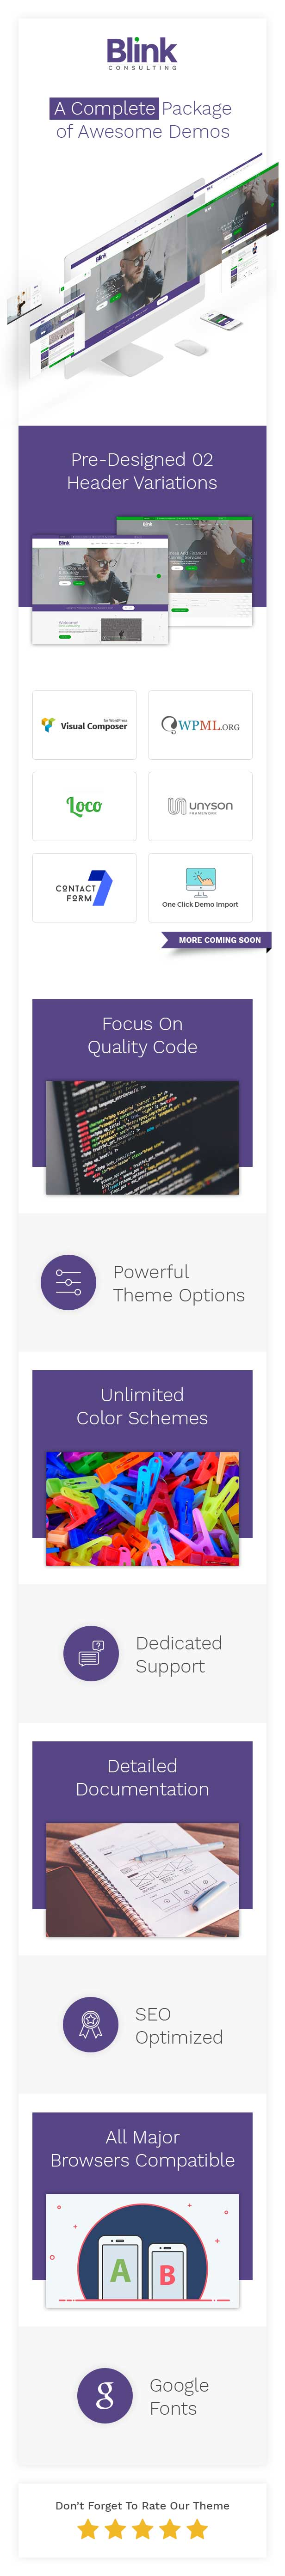 Creative Finance, Consulting and Business Agency WordPress Theme - 1